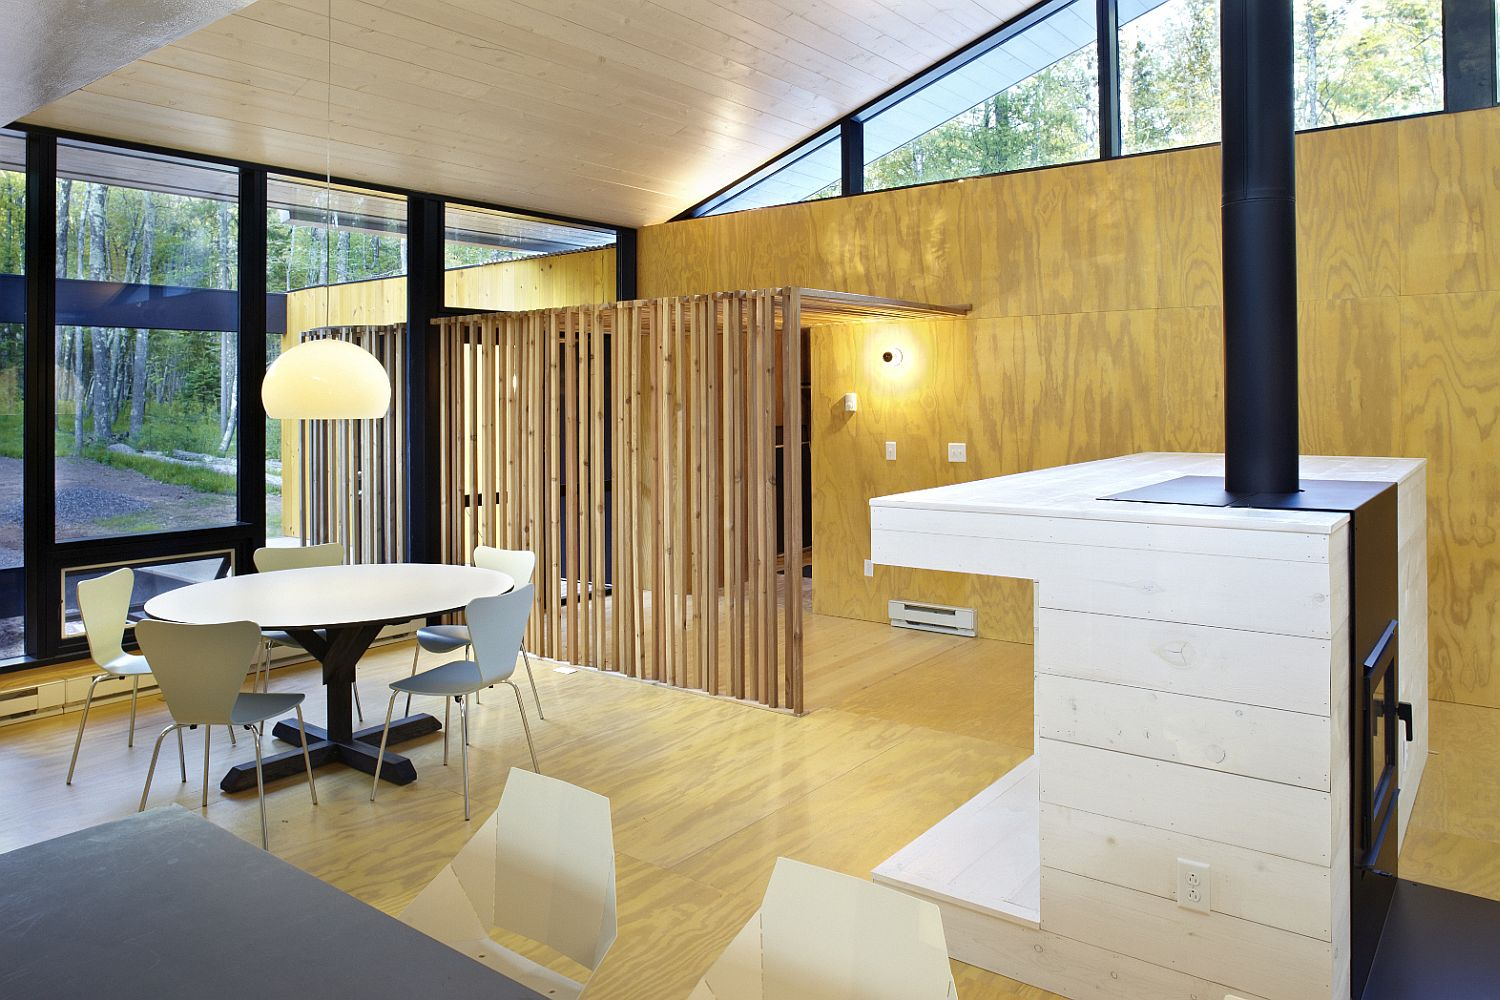 Wooden-slats-help-delineate-space-inside-the-home-without-obstructing-light